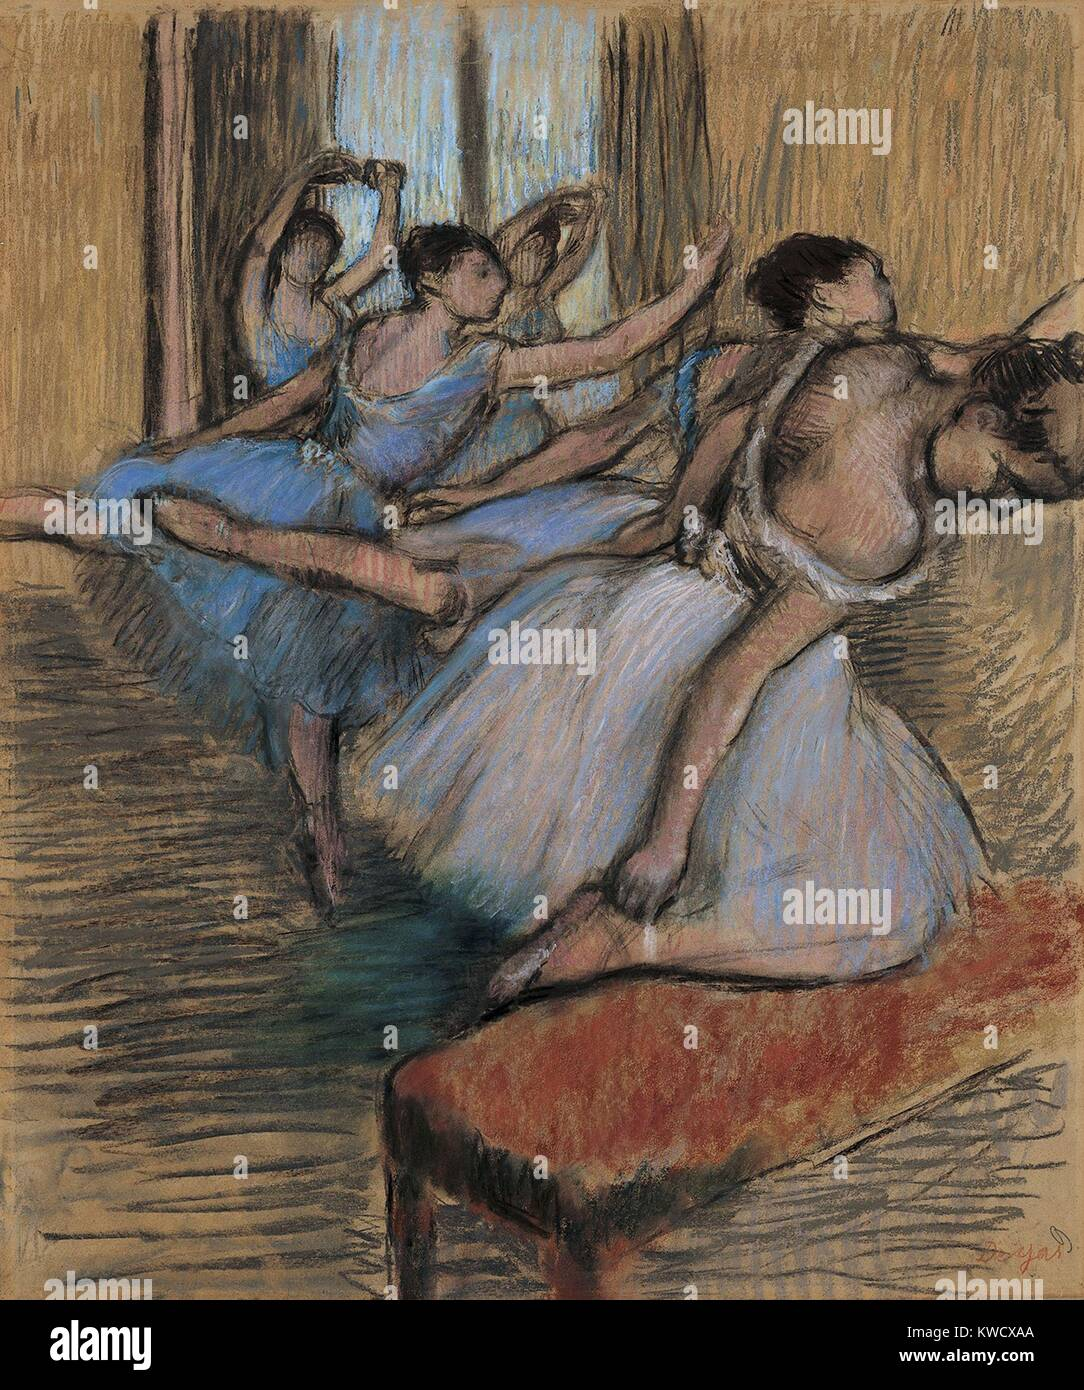 The Dancers, by Edgar Degas, 1900, French impressionist drawing, pastel and charcoal on paper. Degas told art dealer - Stock Image